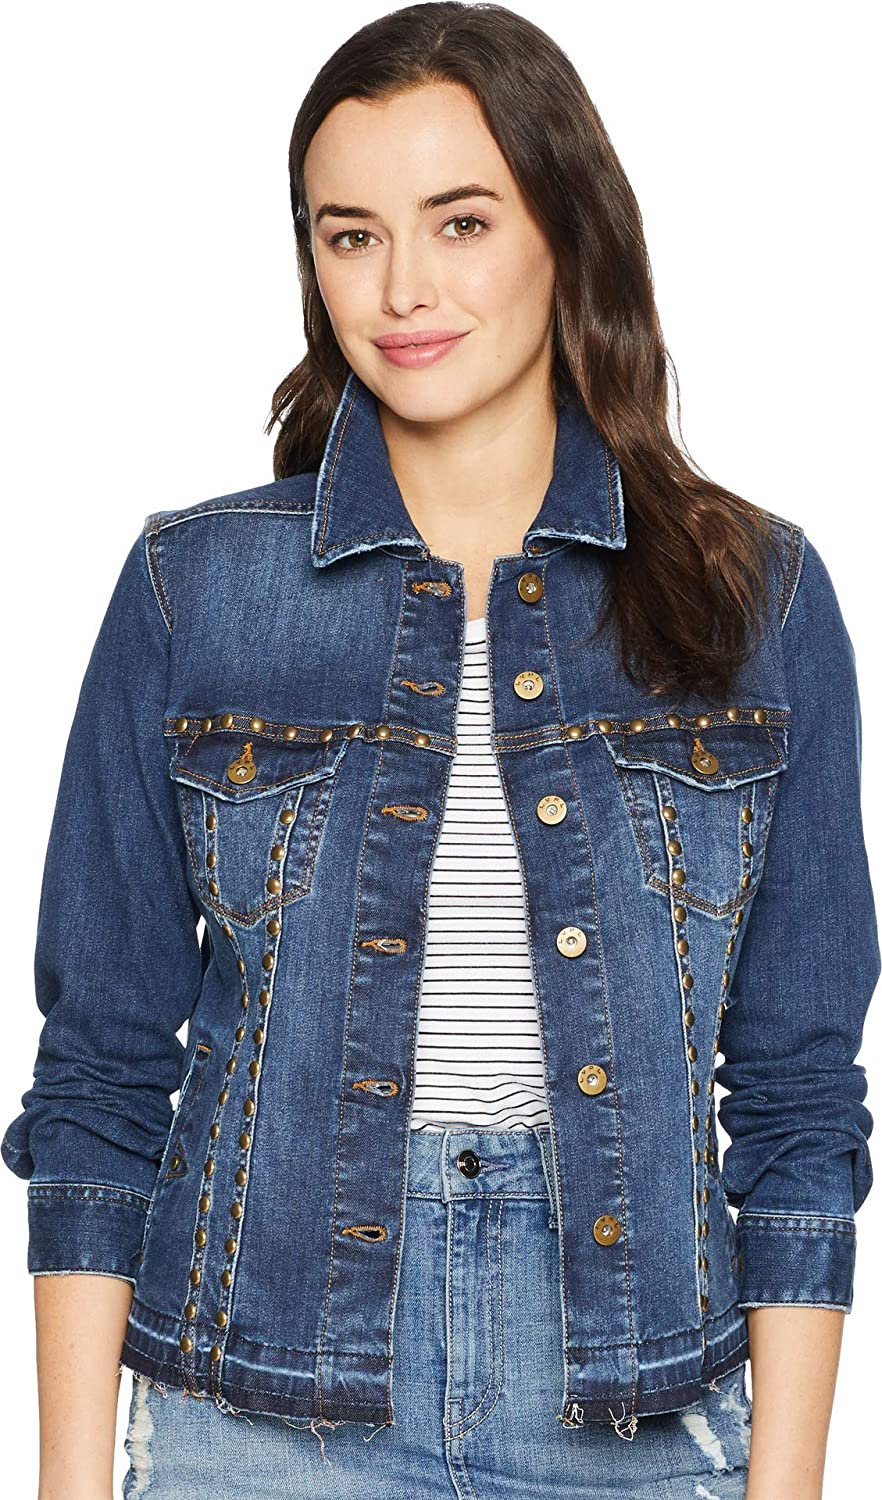 Liverpool Womens Studded Jean Jacket